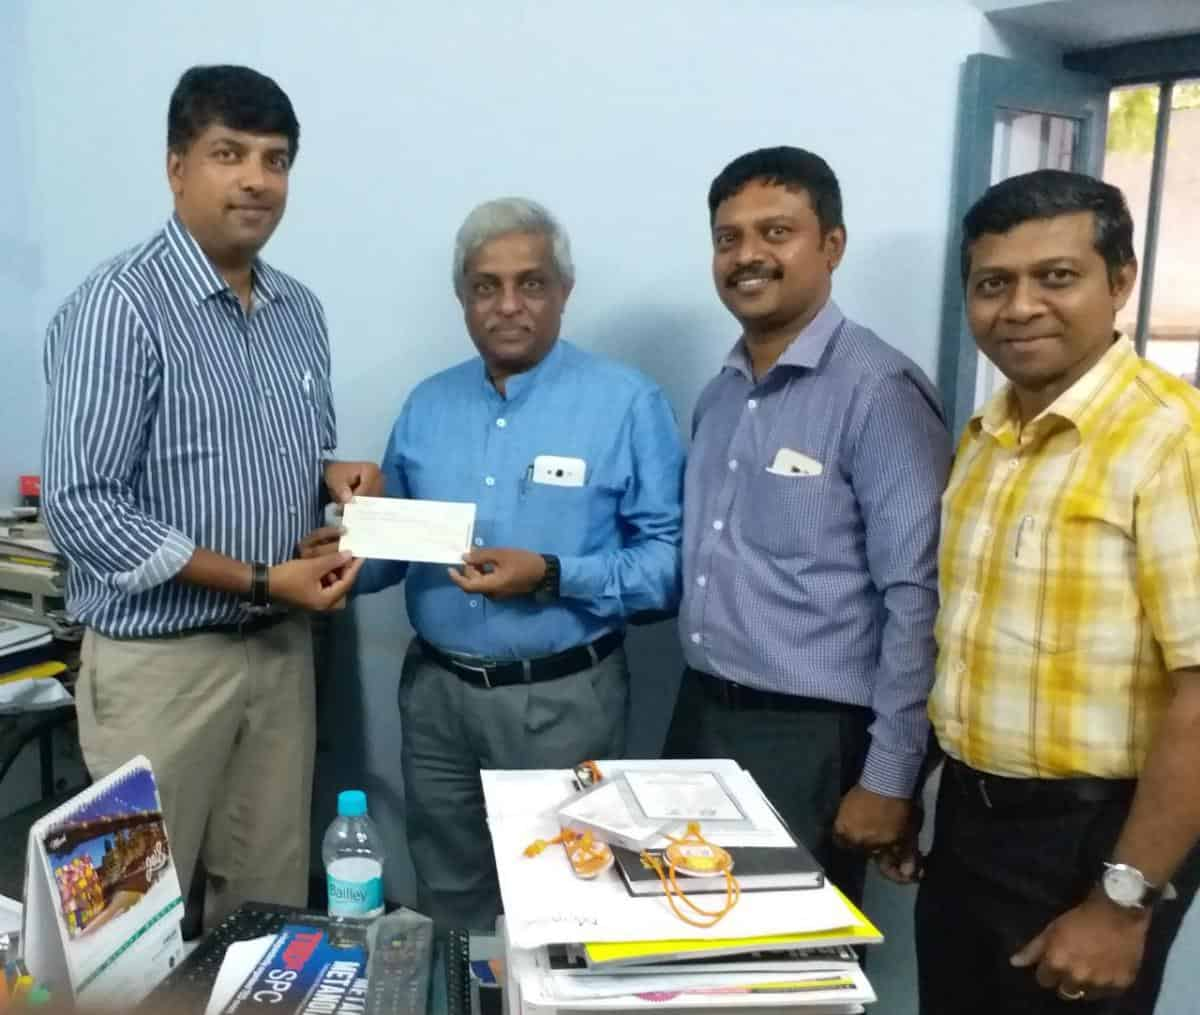 Donation to Mysore Rotary Midtown 2 incinerators for sanitary pad disposal